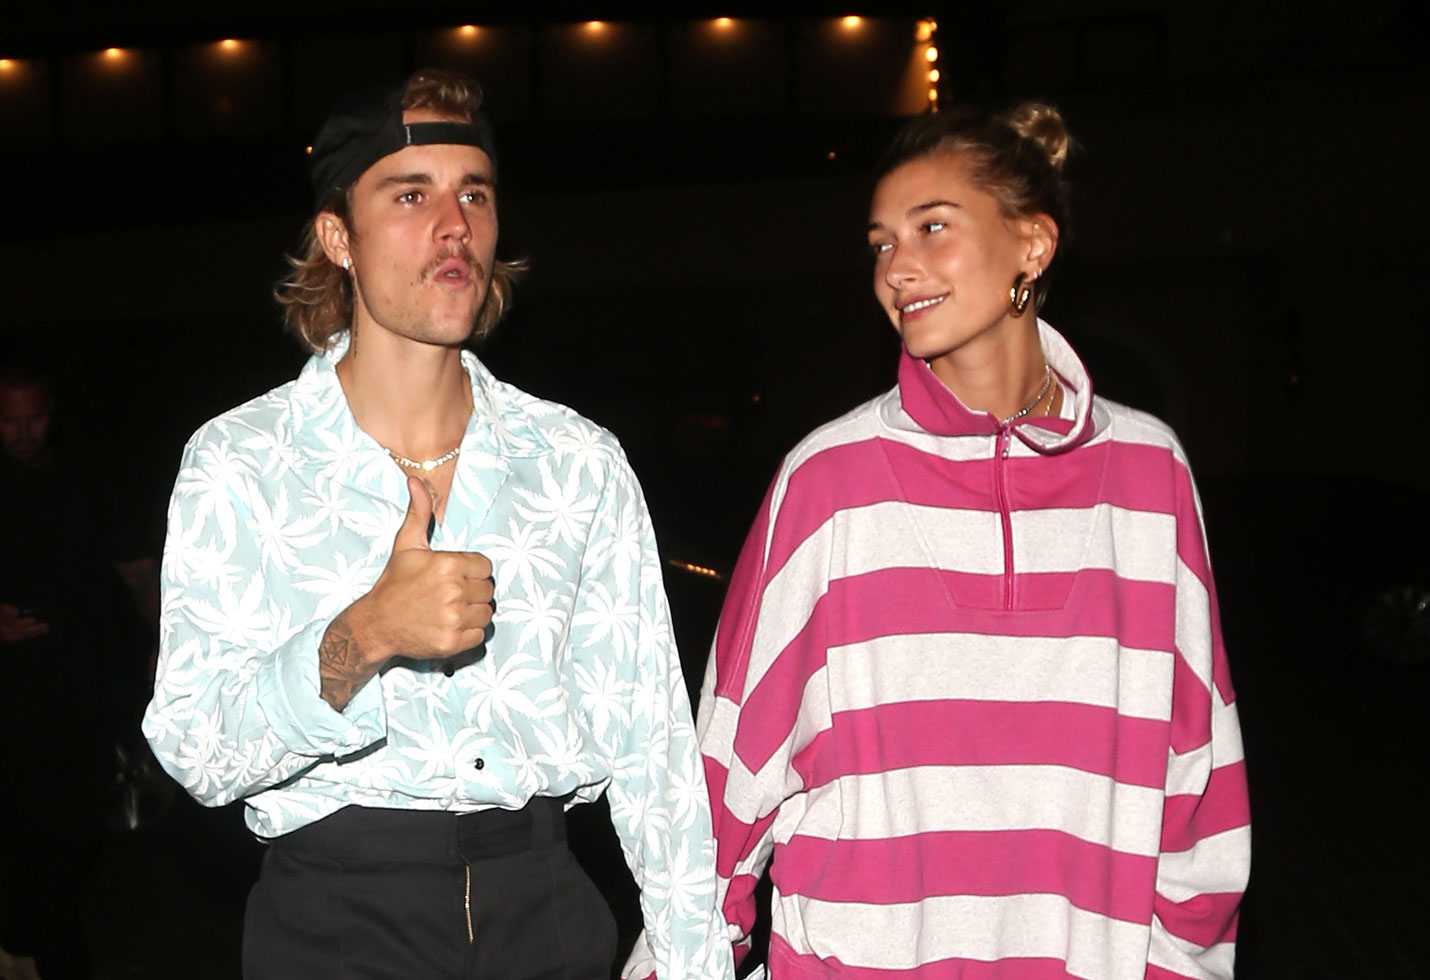 Justin Bieber Married Hailey Baldwin Confirms Fans Los Angeles